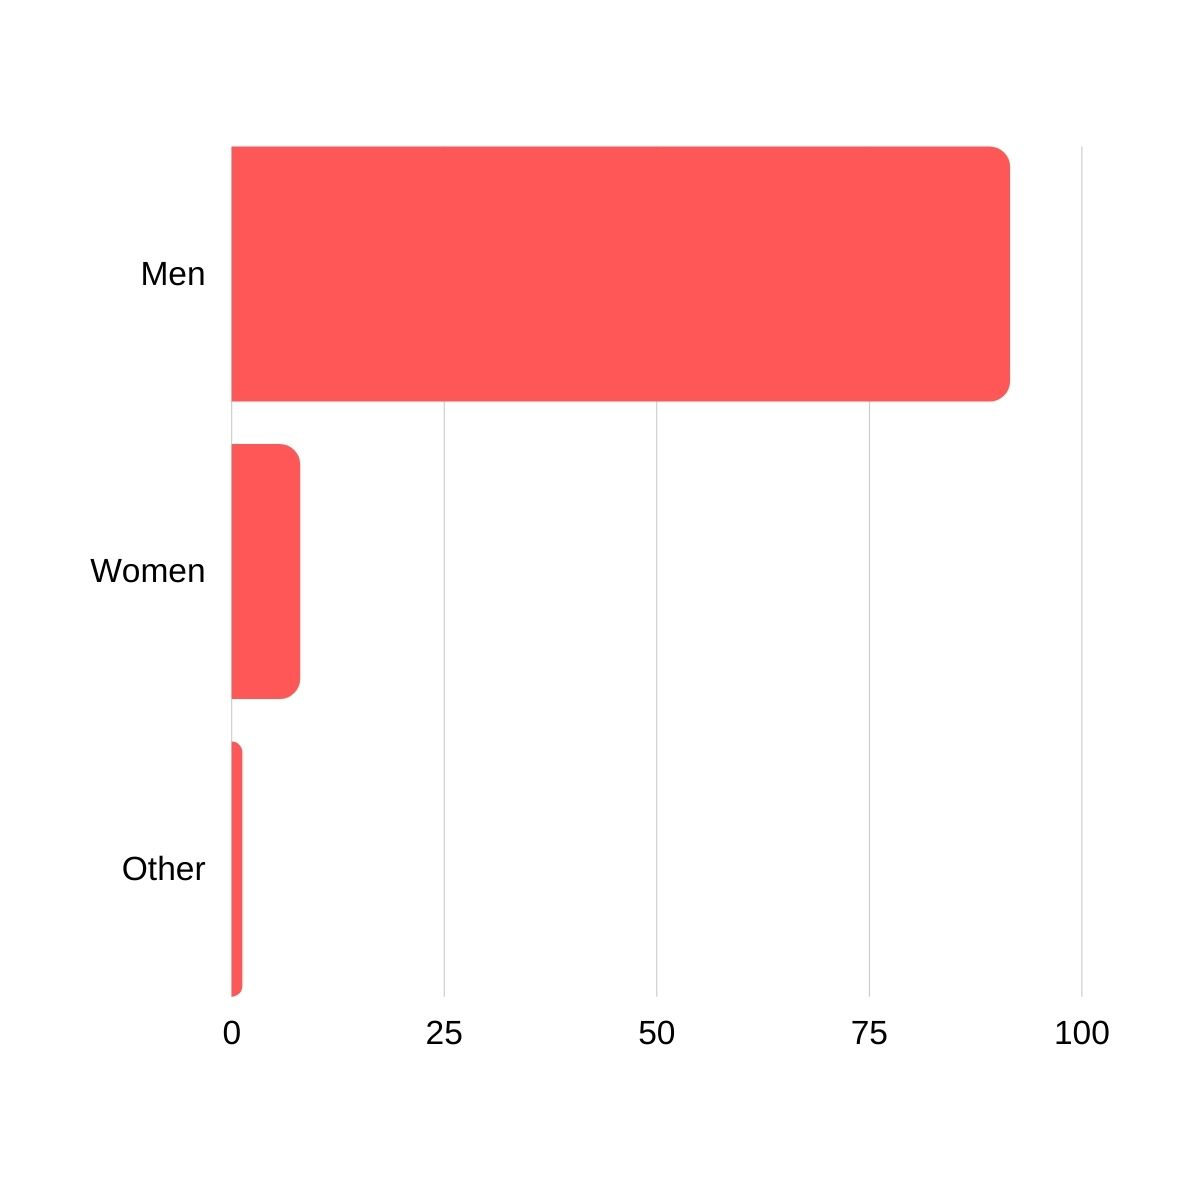 91% of developers identify as male